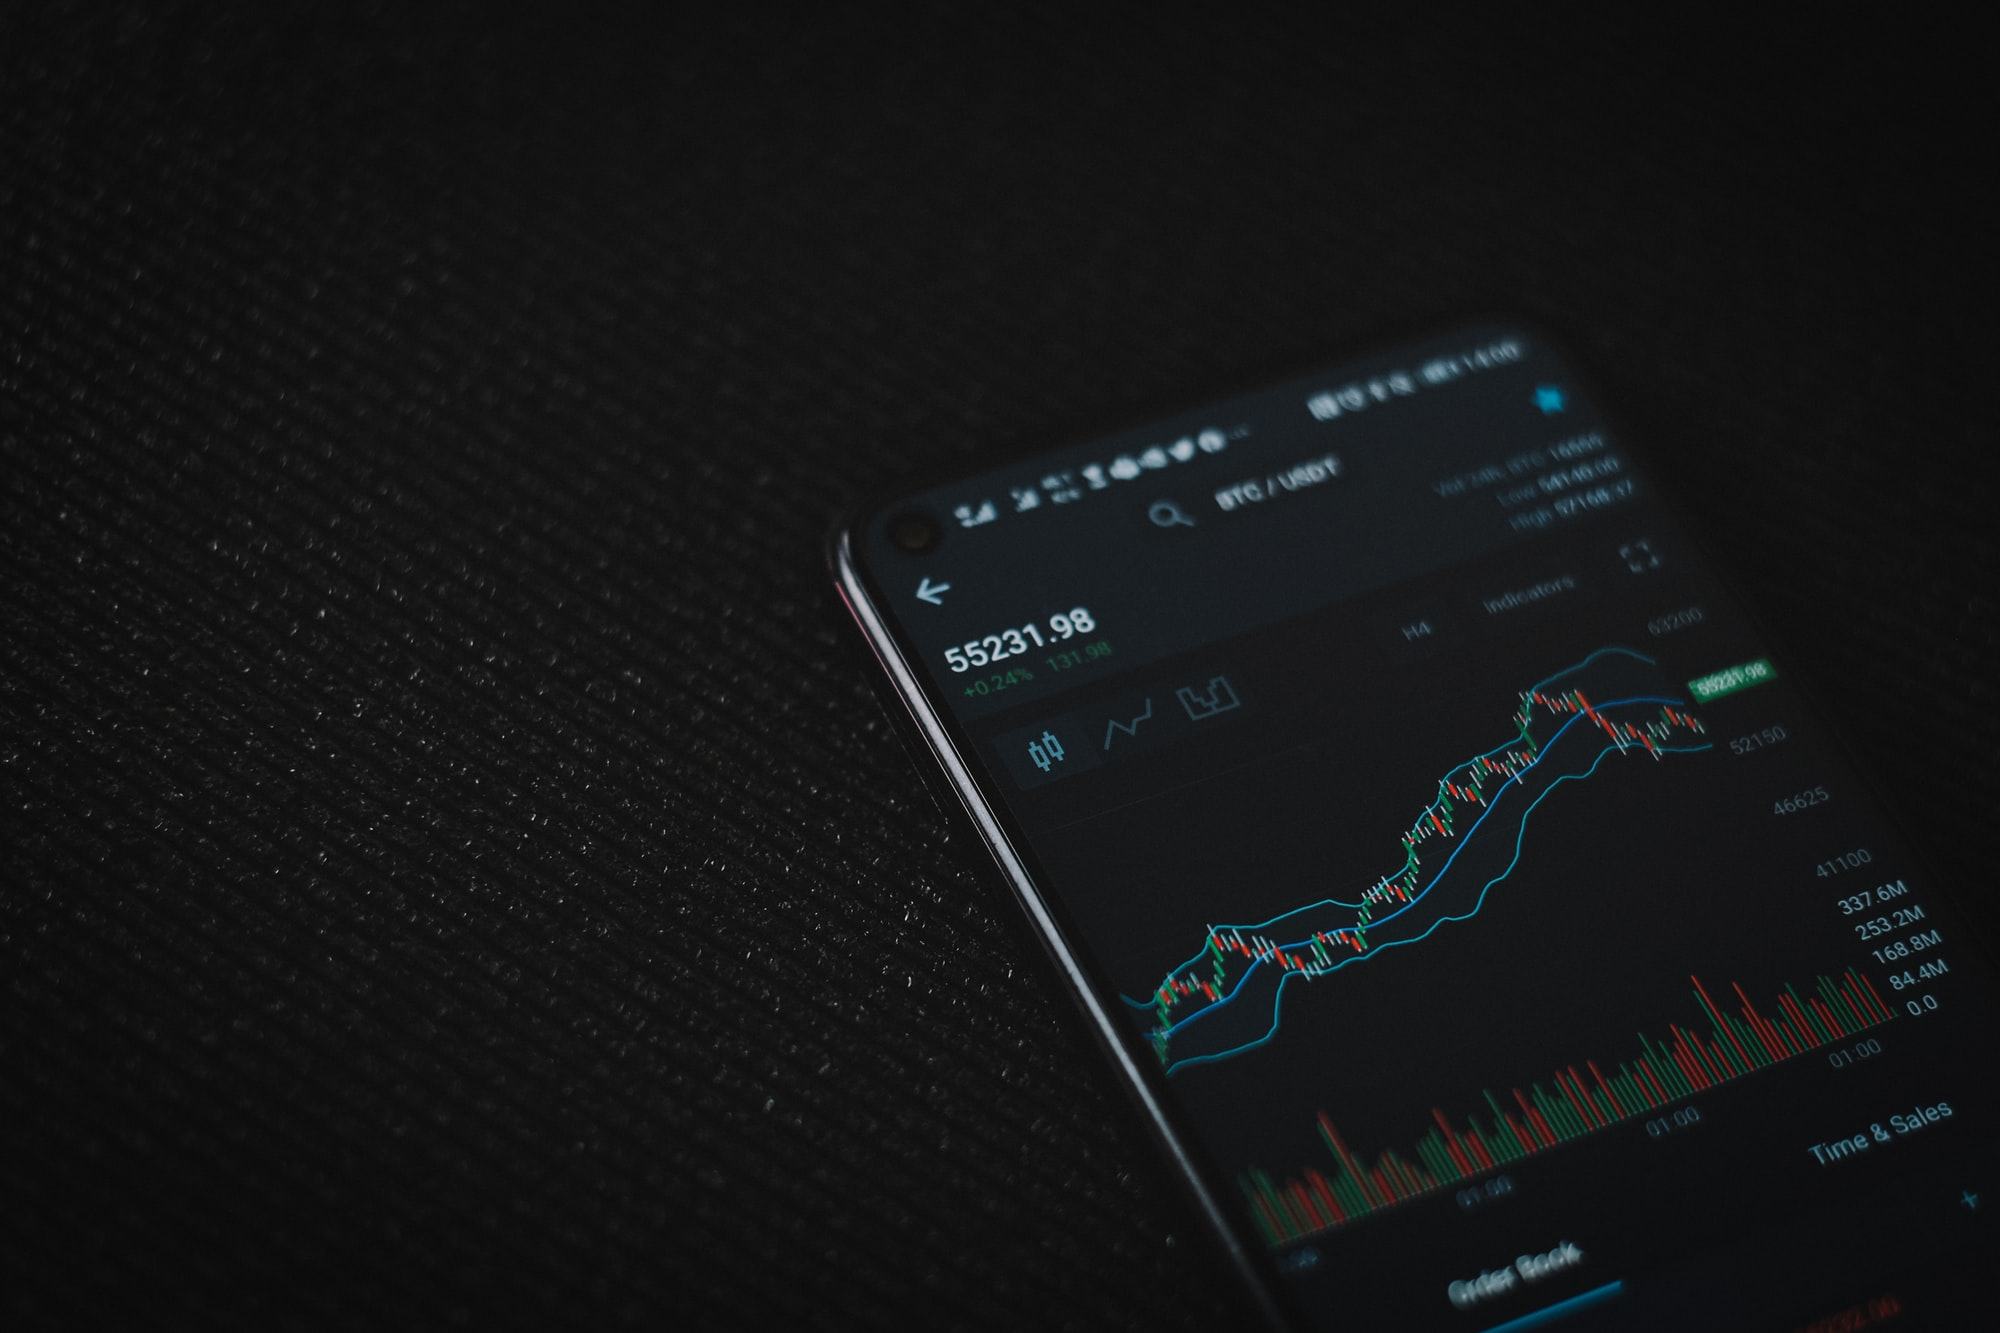 Why focusing on price is giving a completely wrong overview of the blockchain protocols?